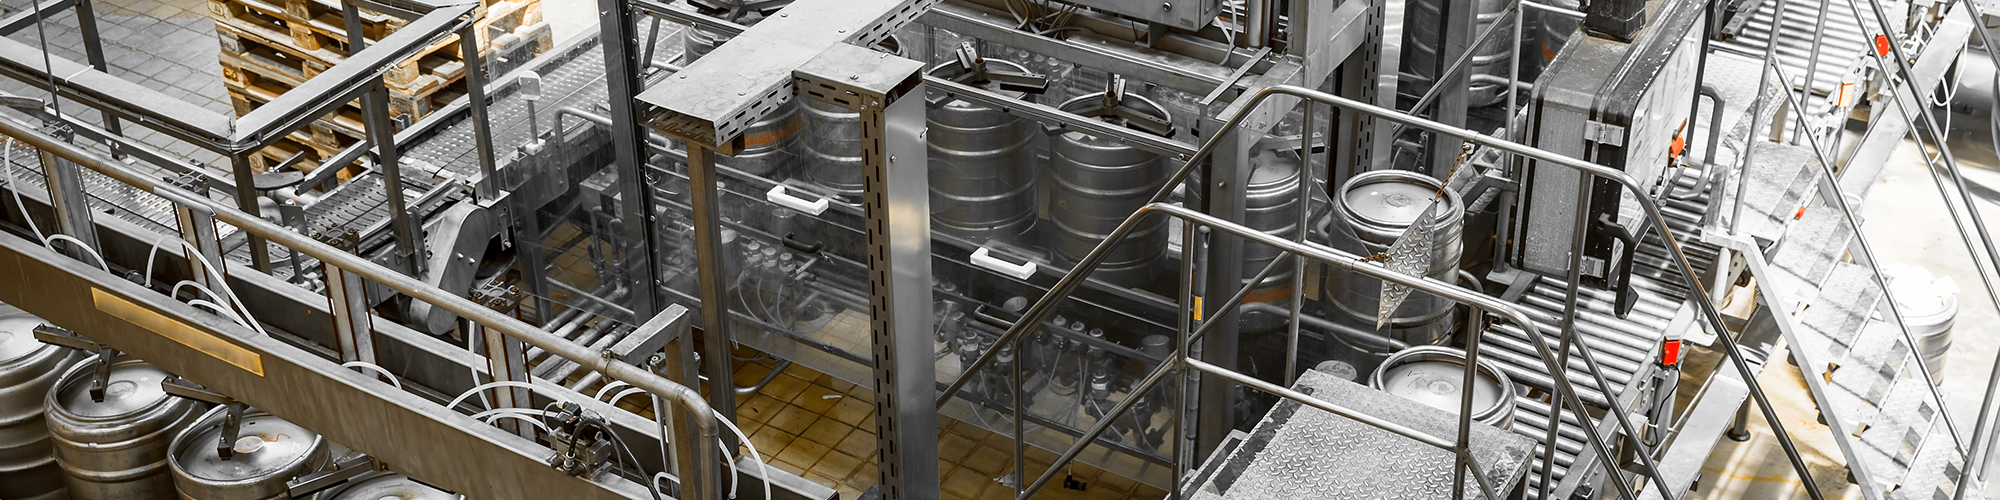 Brewery and Food Processors